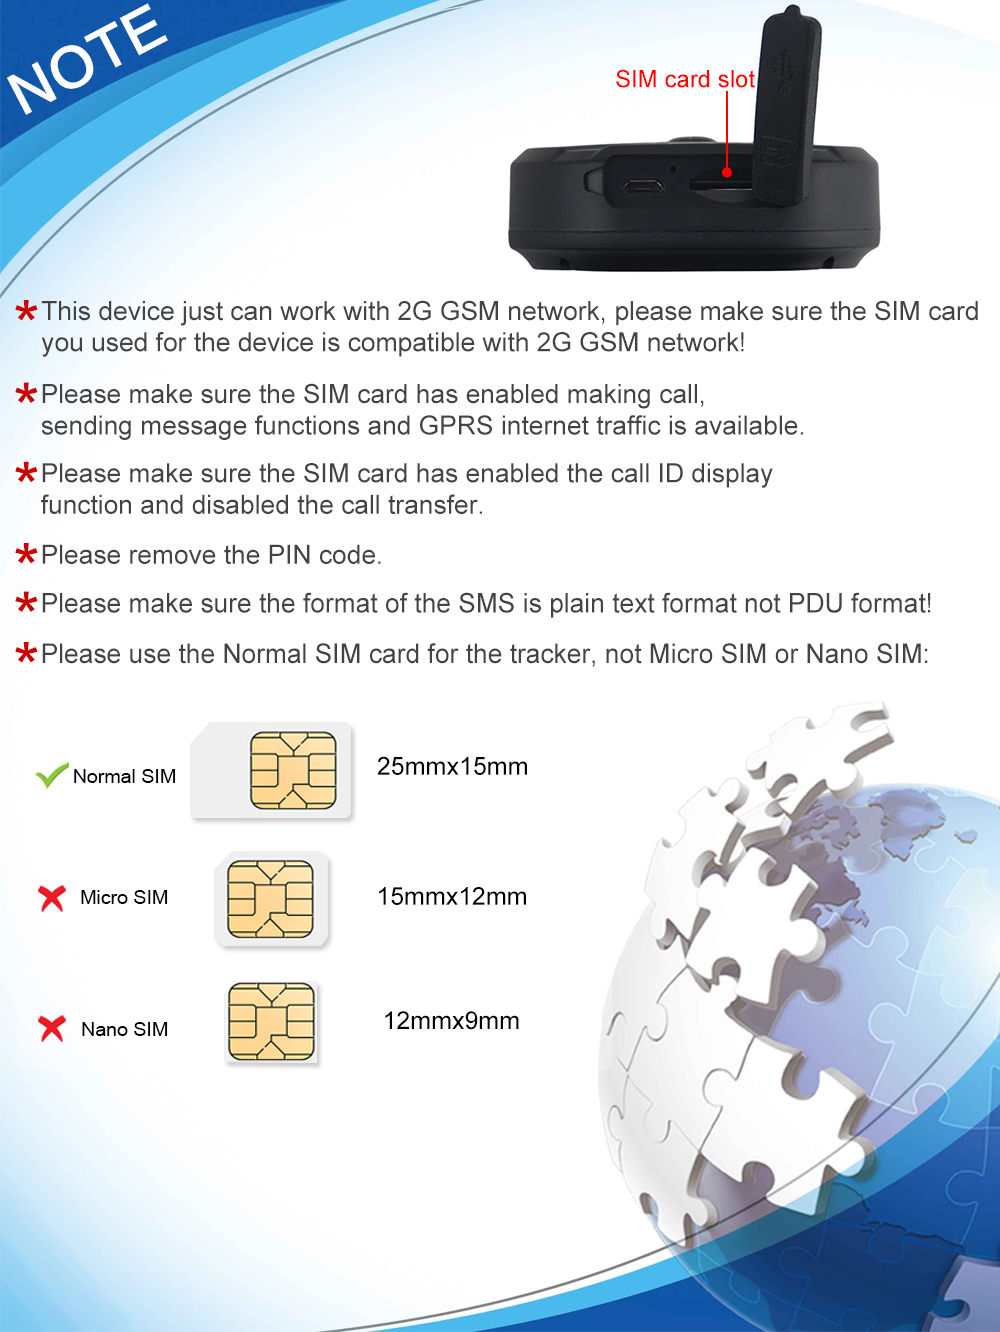 TKSTAR TK905 GPS Tracker Locator Monitor 5000mAh with Powerful Magnet Free Web APP